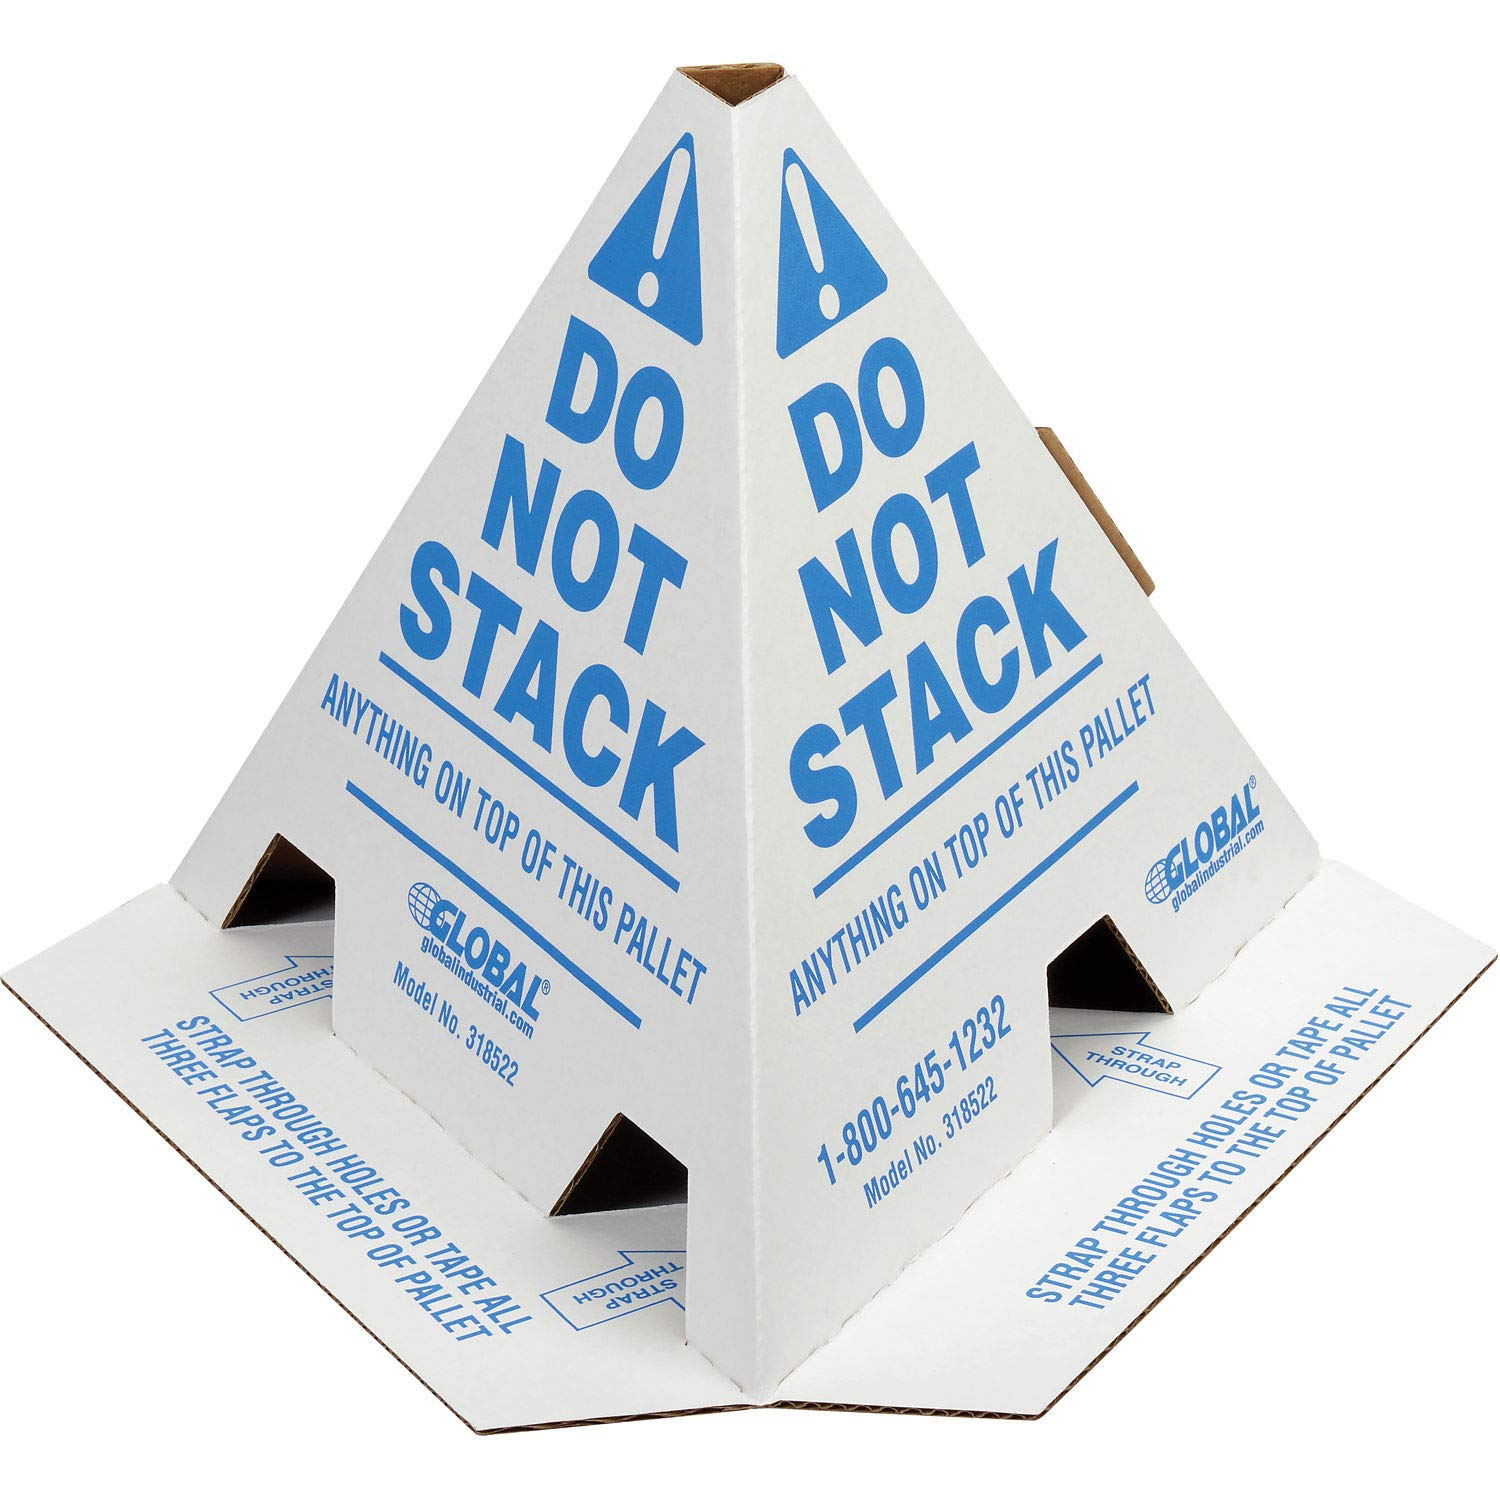 English French /& Spanish Top Pack SupplyNO Stack Print Pallet Cones 50 Cones per Case White with Red.